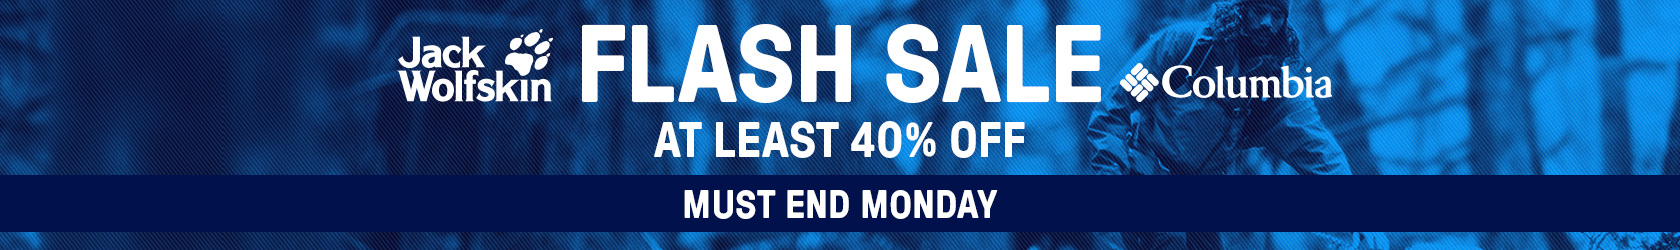 Flash sale - Jack Wolfskin and Columbia